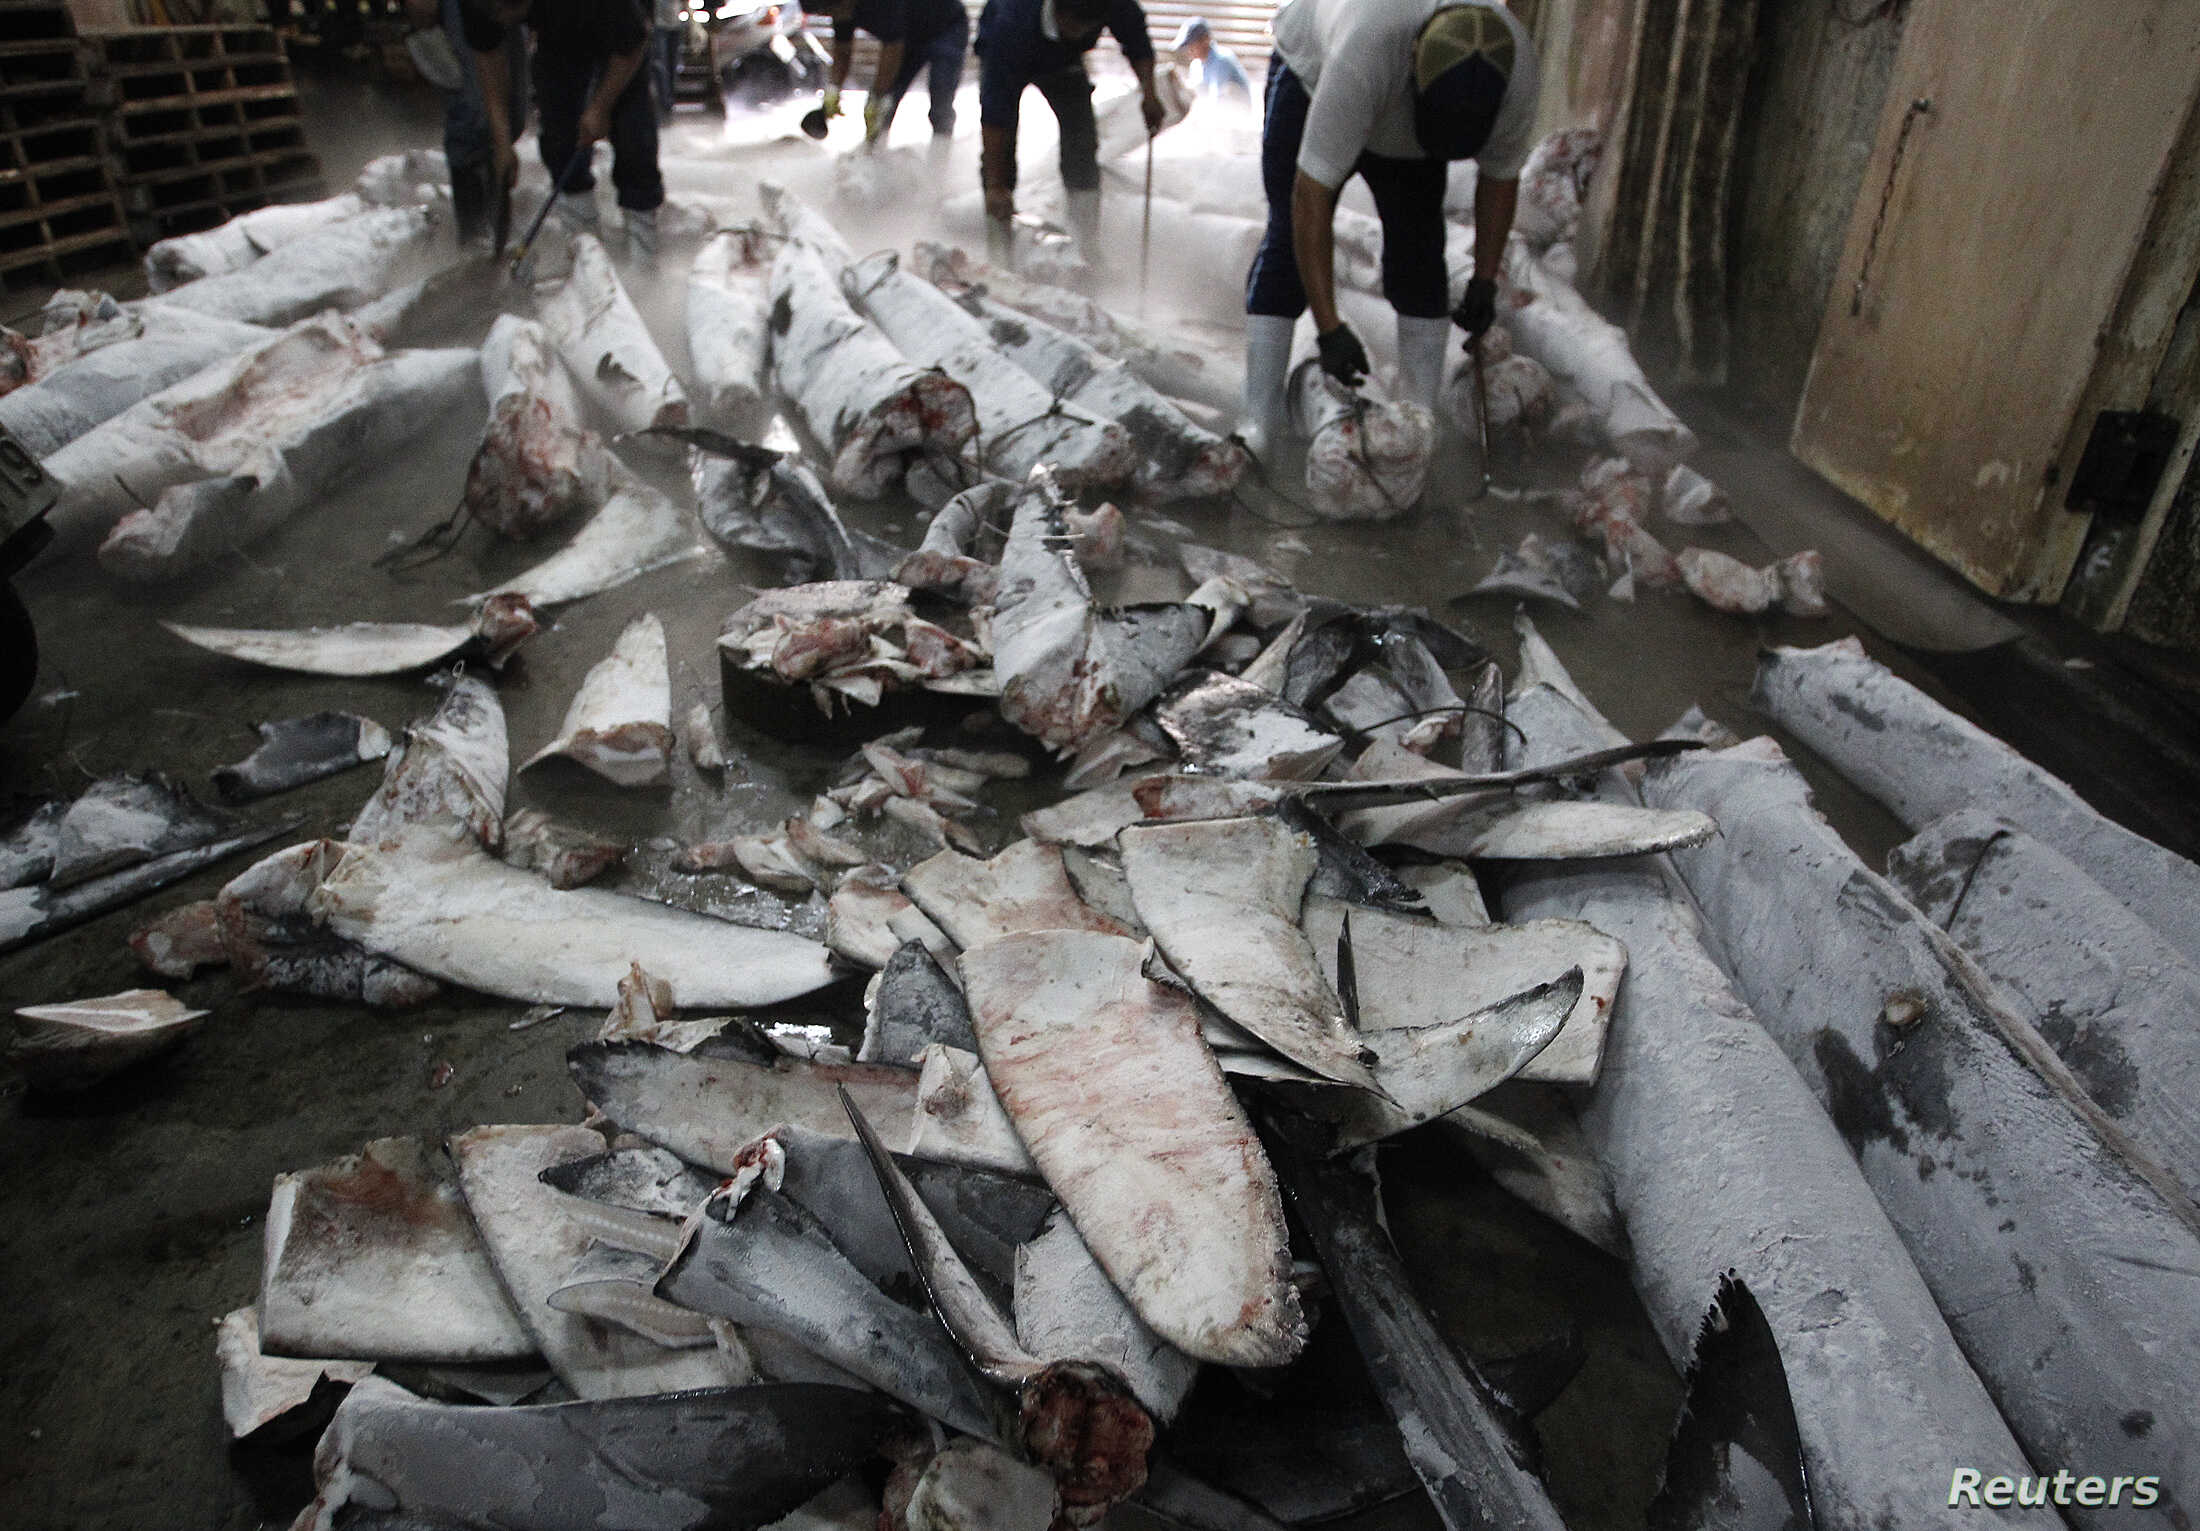 Workers cut off fins from frozen carcasses of a sharks at a fish processing plant in Kaohsiung, southern Taiwan, November 15, 2011.